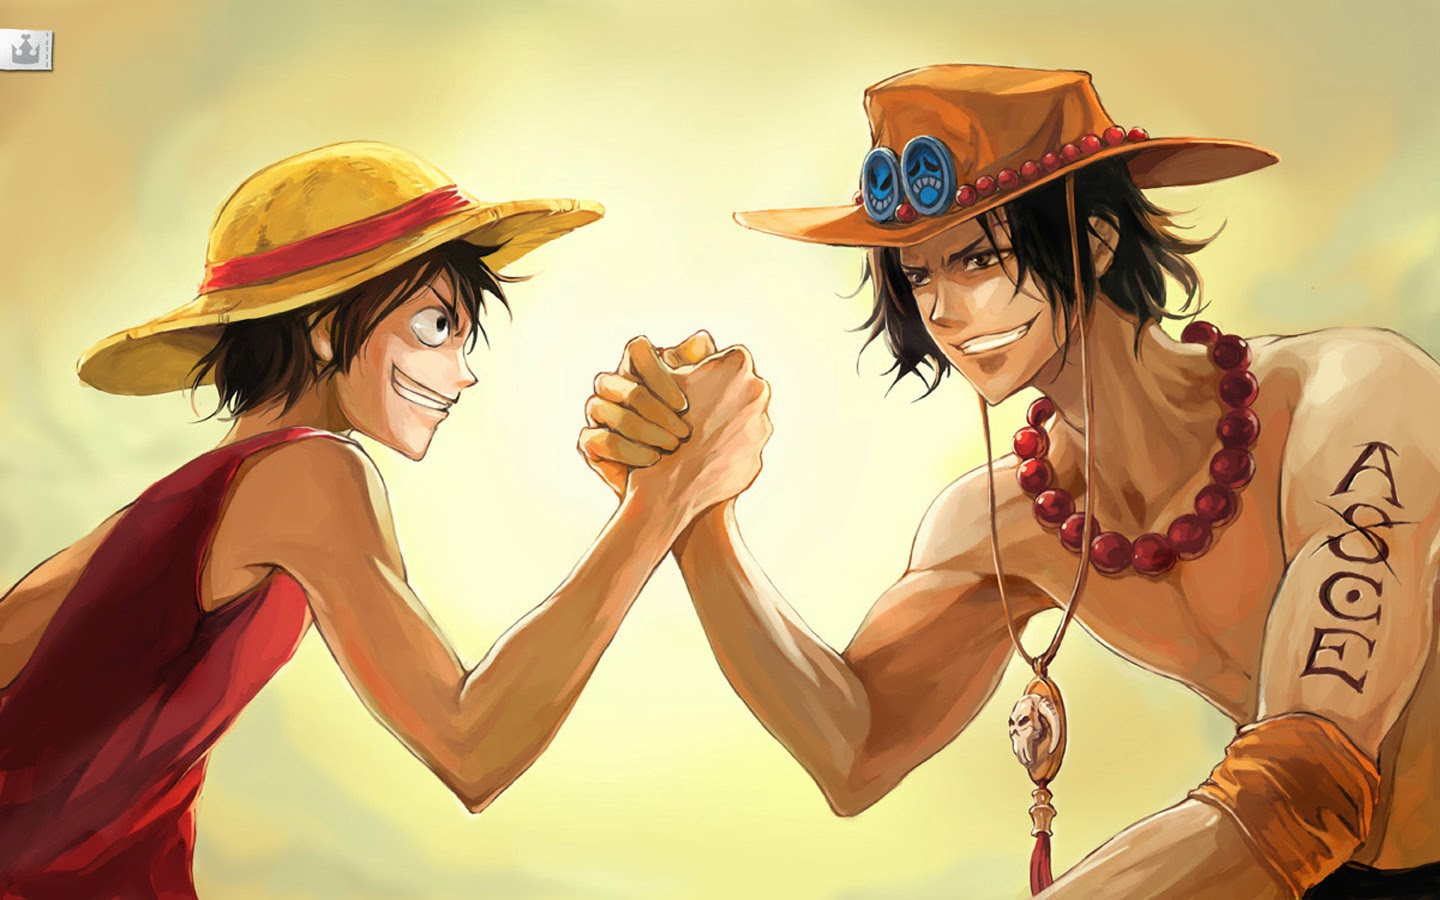 Free Download Fire Fist Monkey D Luffy Hd Wallpaper One Piece Anime 1440x900 A412 1440x900 For Your Desktop Mobile Tablet Explore 76 Luffy Wallpaper One Piece Wallpaper Luffy One